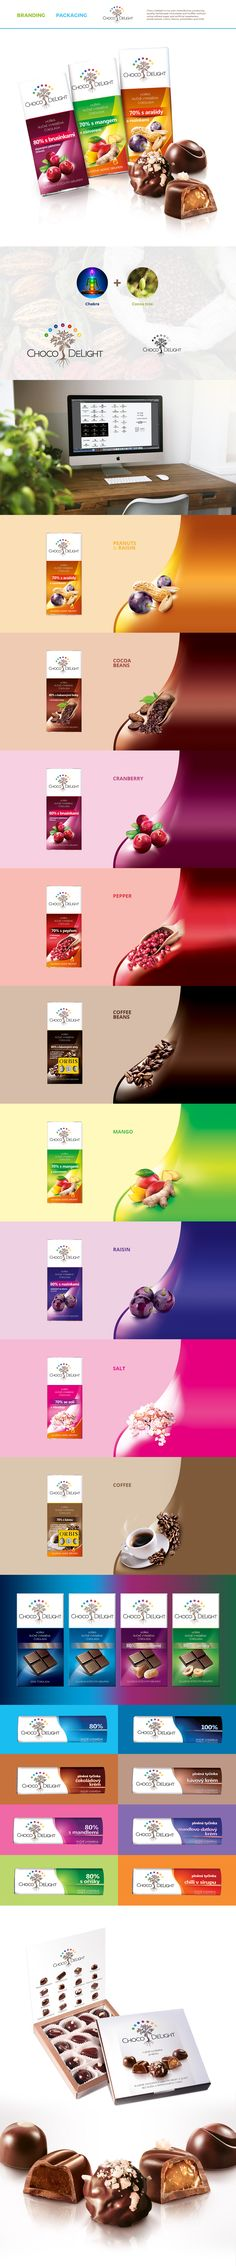 Choco Delight - packaging design on Behance